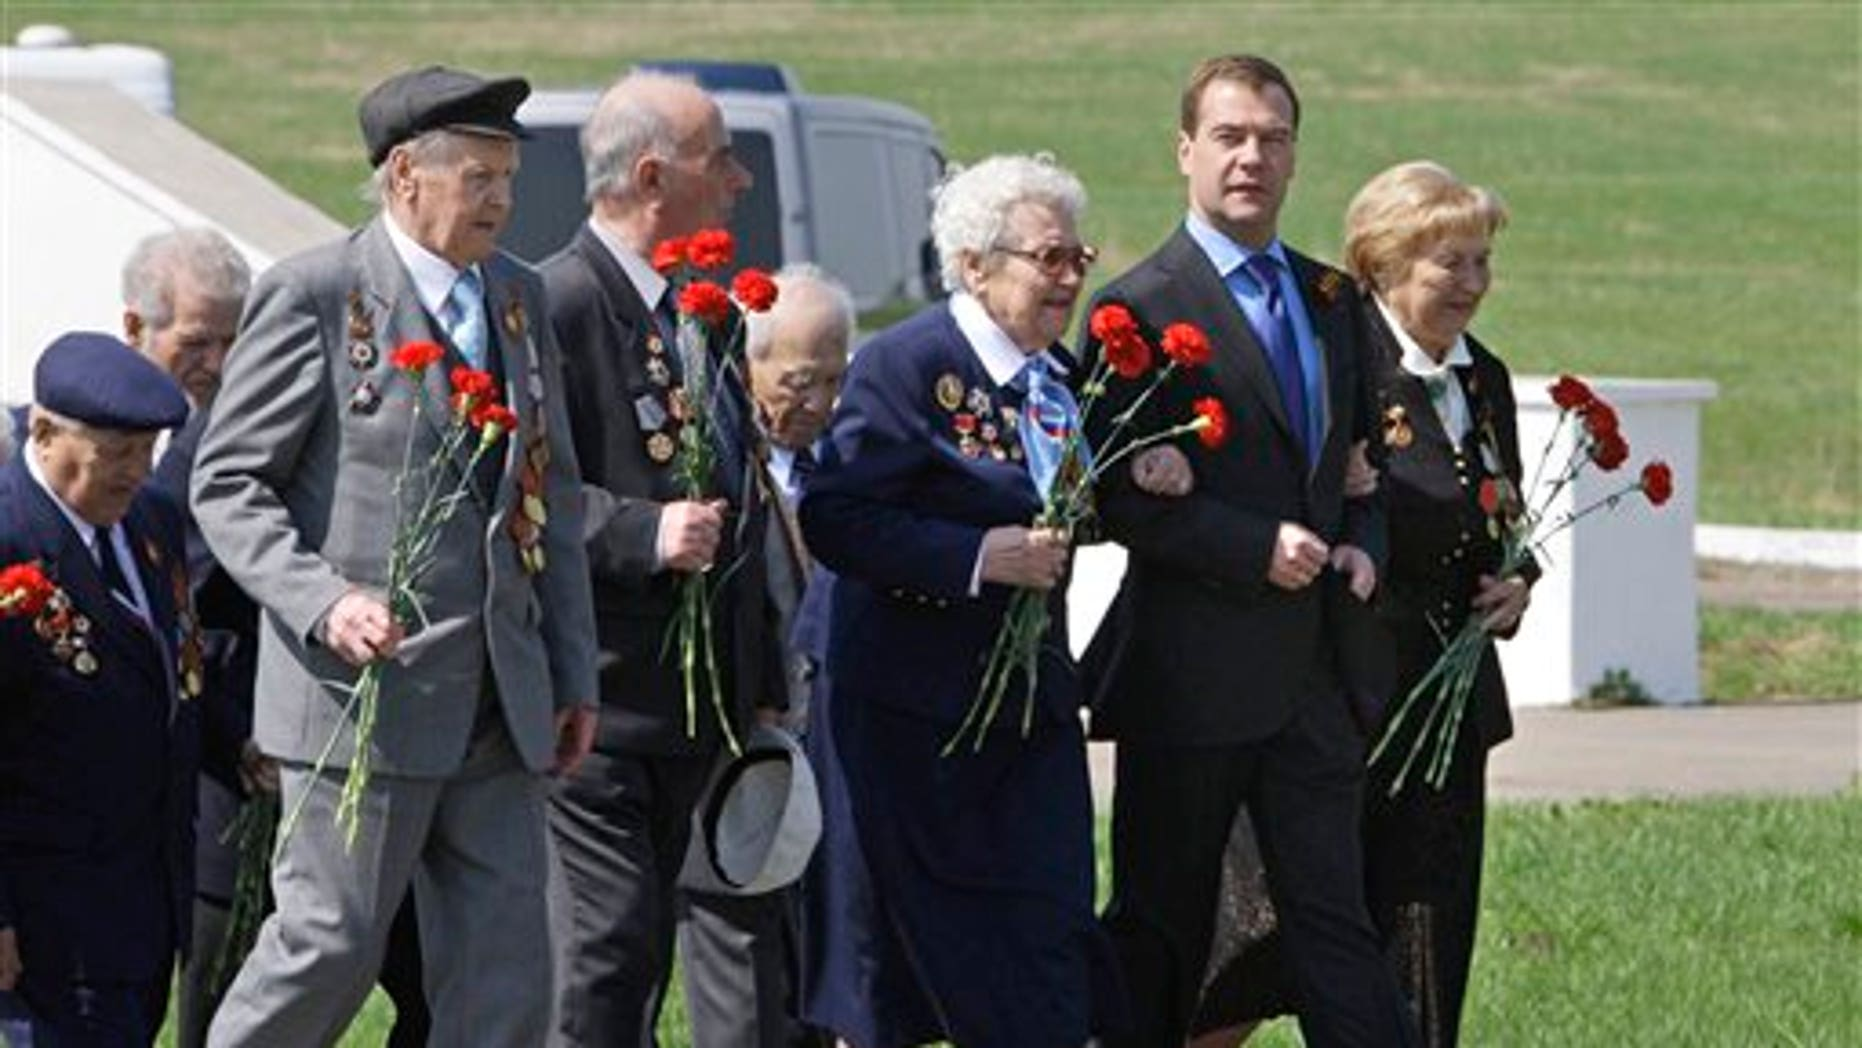 May 7: Russian President Dmitry Medvedev, second right, walks with World War II veterans to lay flowers at the monument to Soviet soldiers killed fighting Nazi troops in Nov. 1941, near Volokolamsk, 62.5 miles west of Moscow. Russia will celebrate its victory in WWII on May 9.